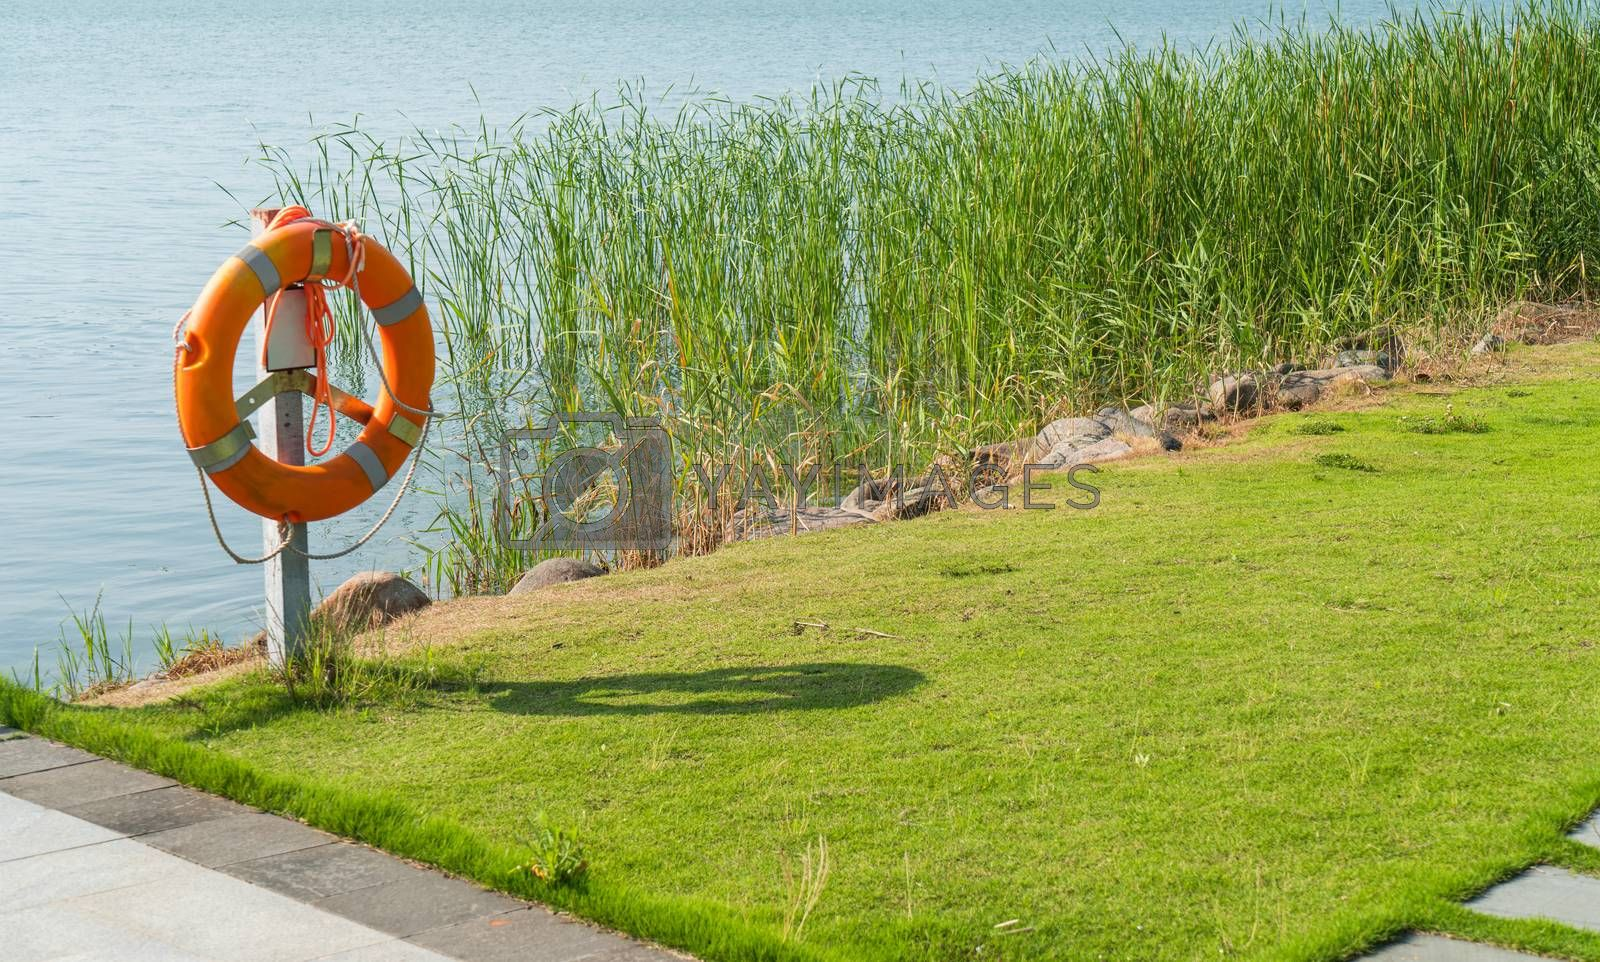 The life buoy by the lake in a public park. Photo in Suzhou, China.